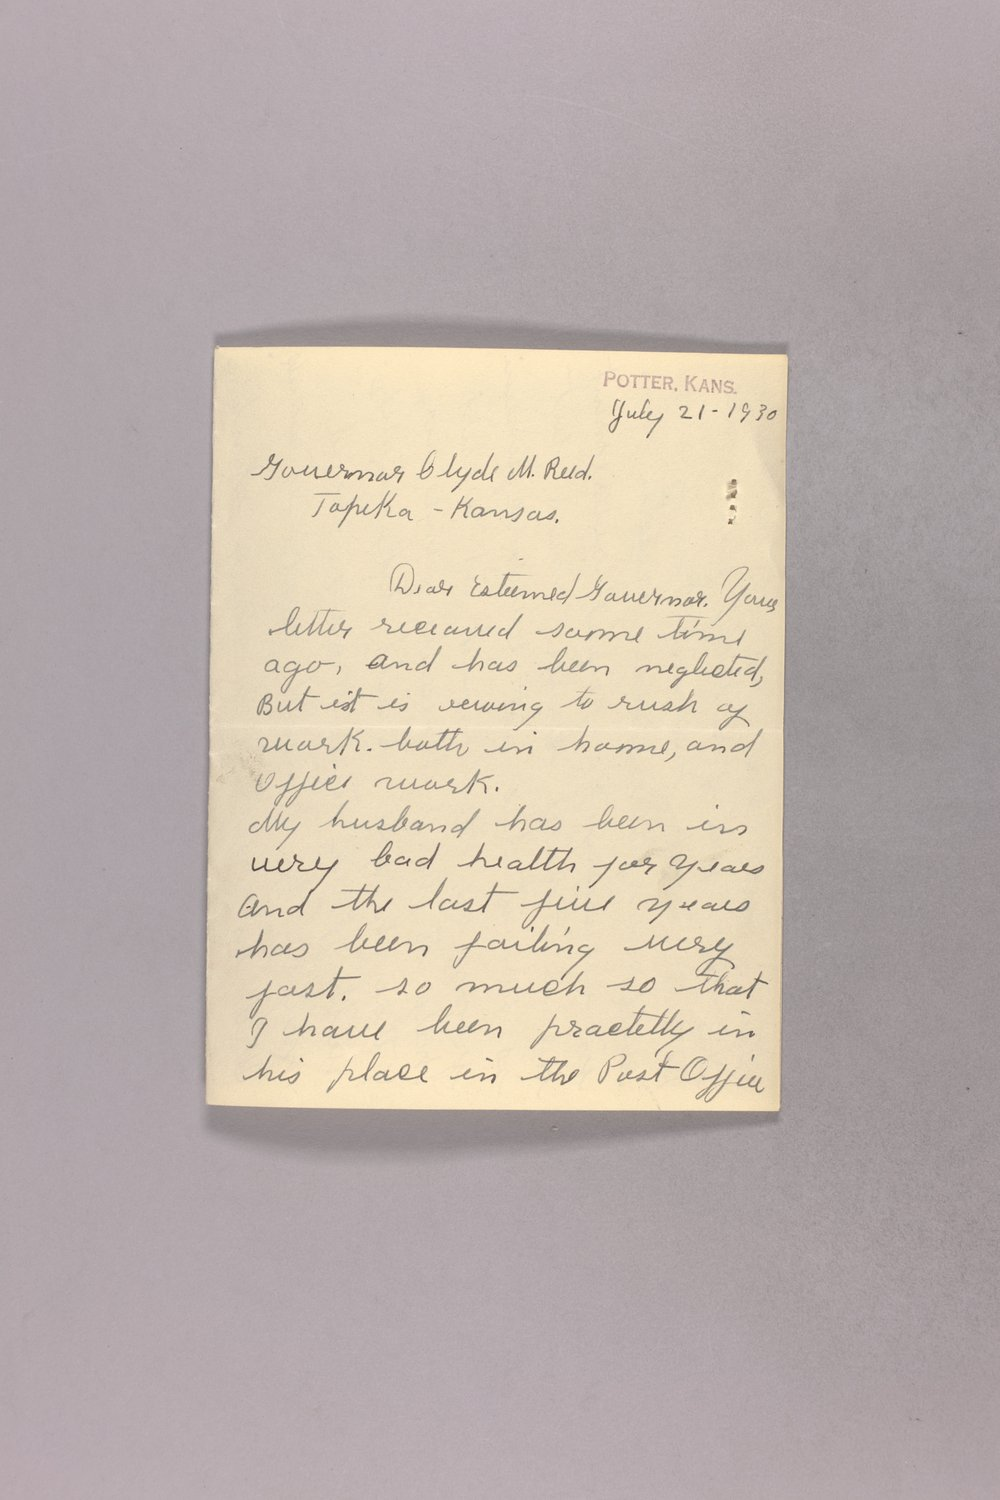 Governor Clyde M. Reed correspondence, United States Postal Service - 5